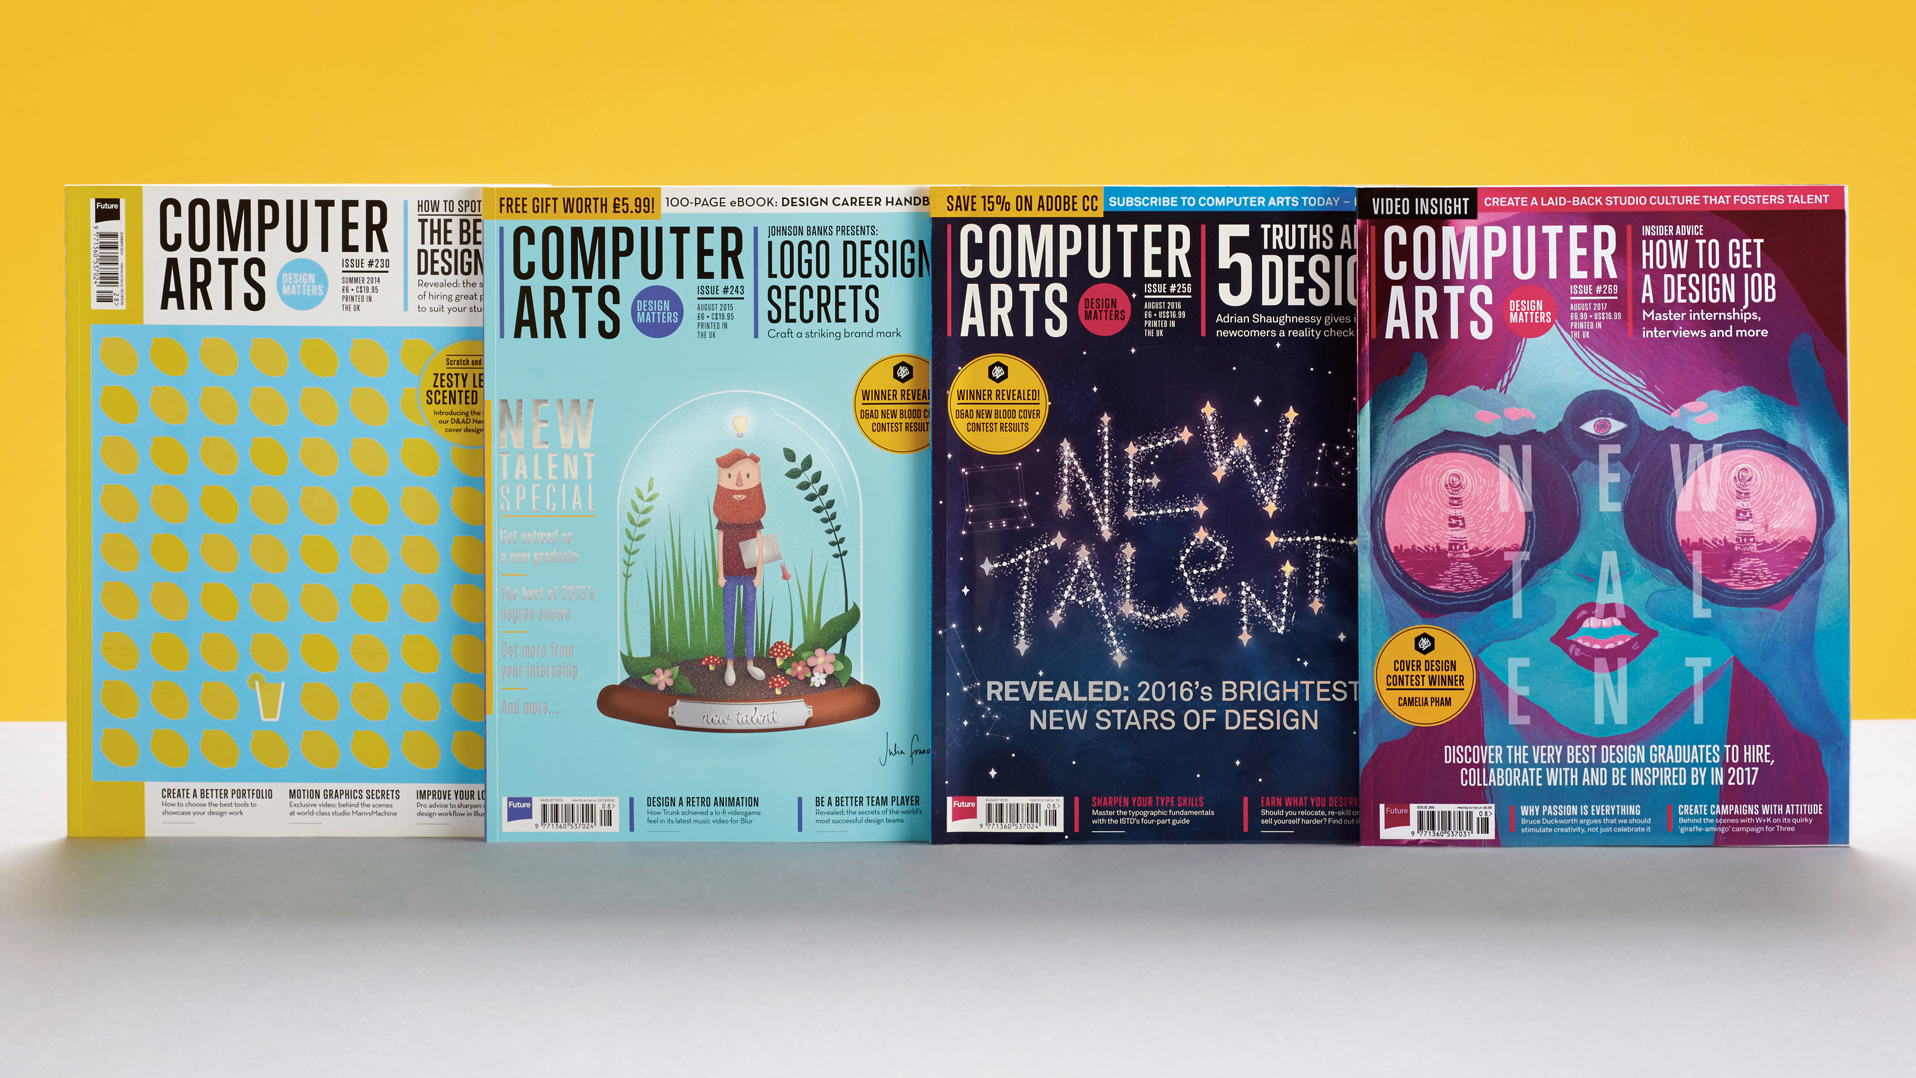 Computer Arts cover competition 2018